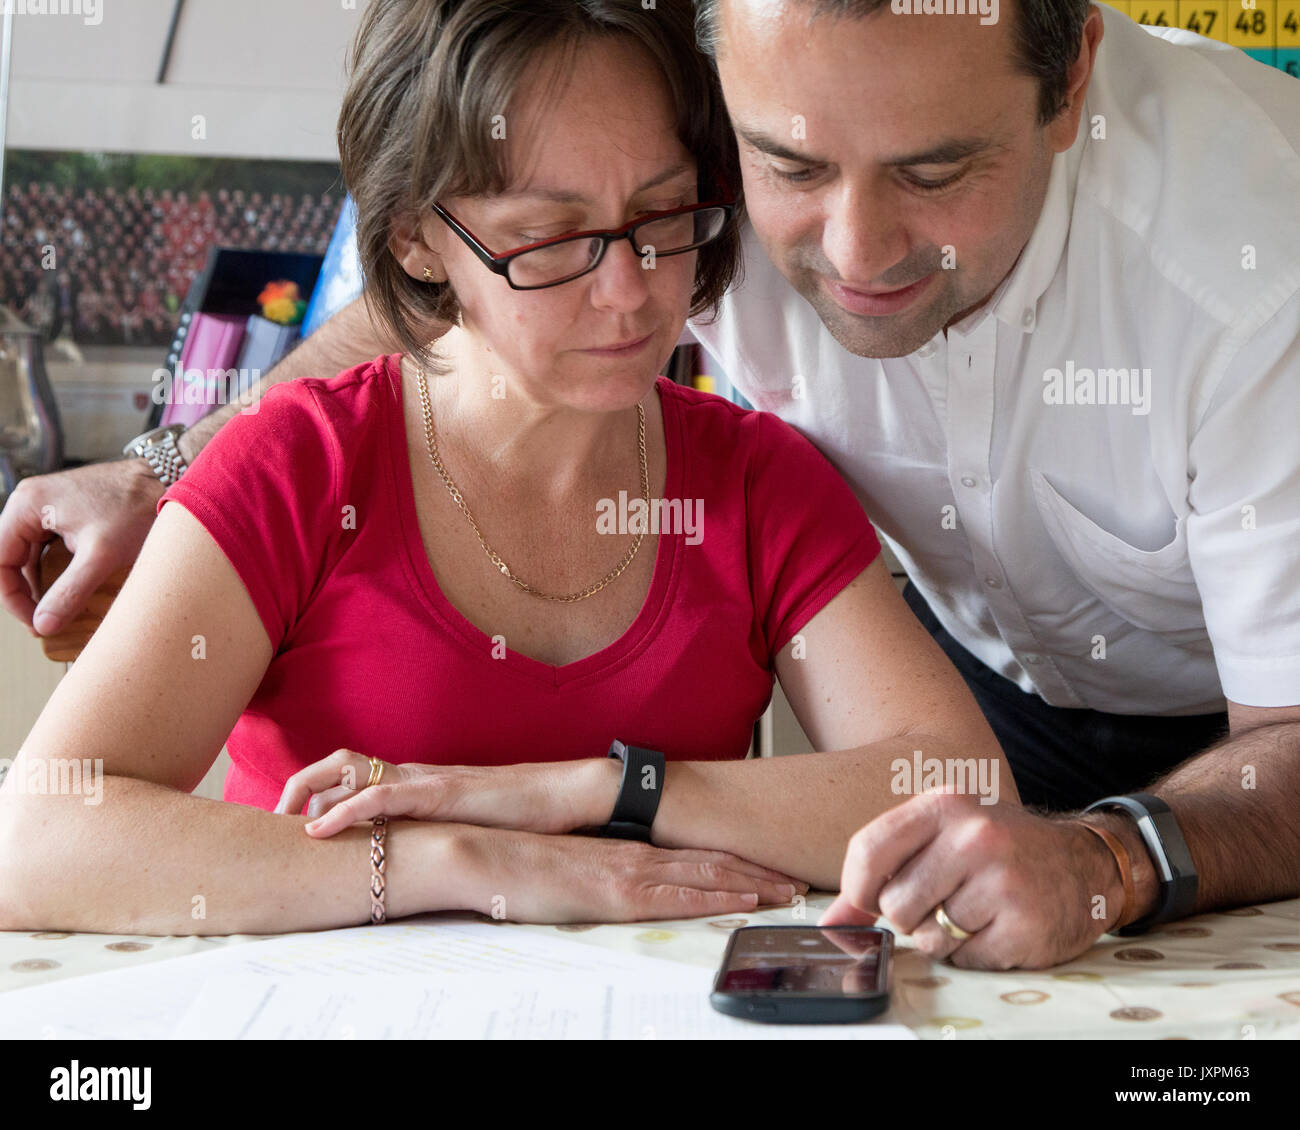 two people looking at paperwork and mobile phone Stock Photo